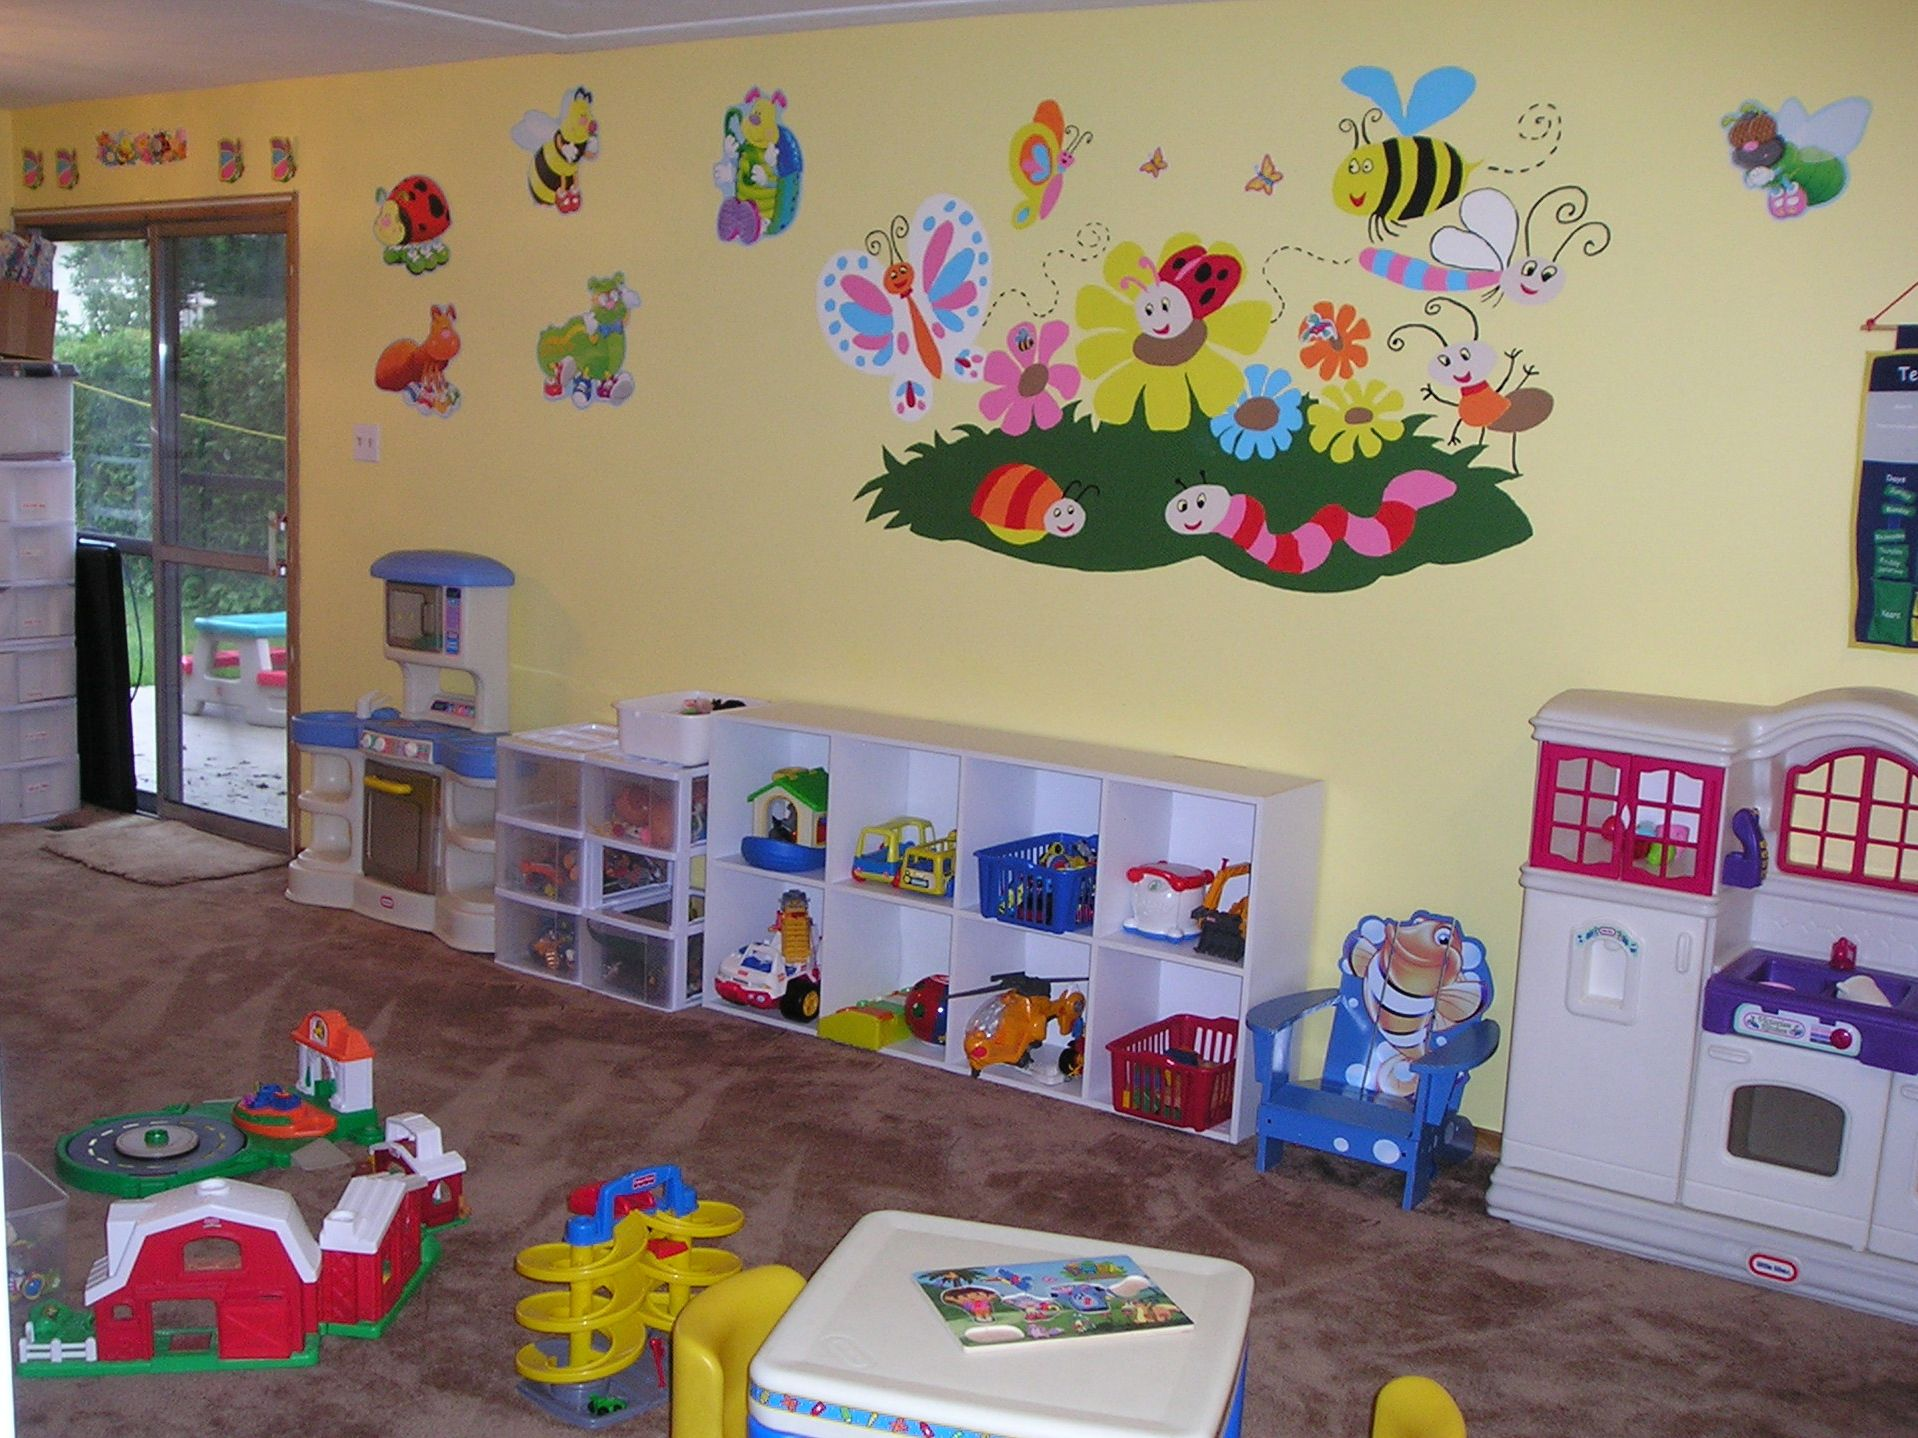 I Like The Idea Of Cubby Holes For Kids Belongings Daycare Room Design